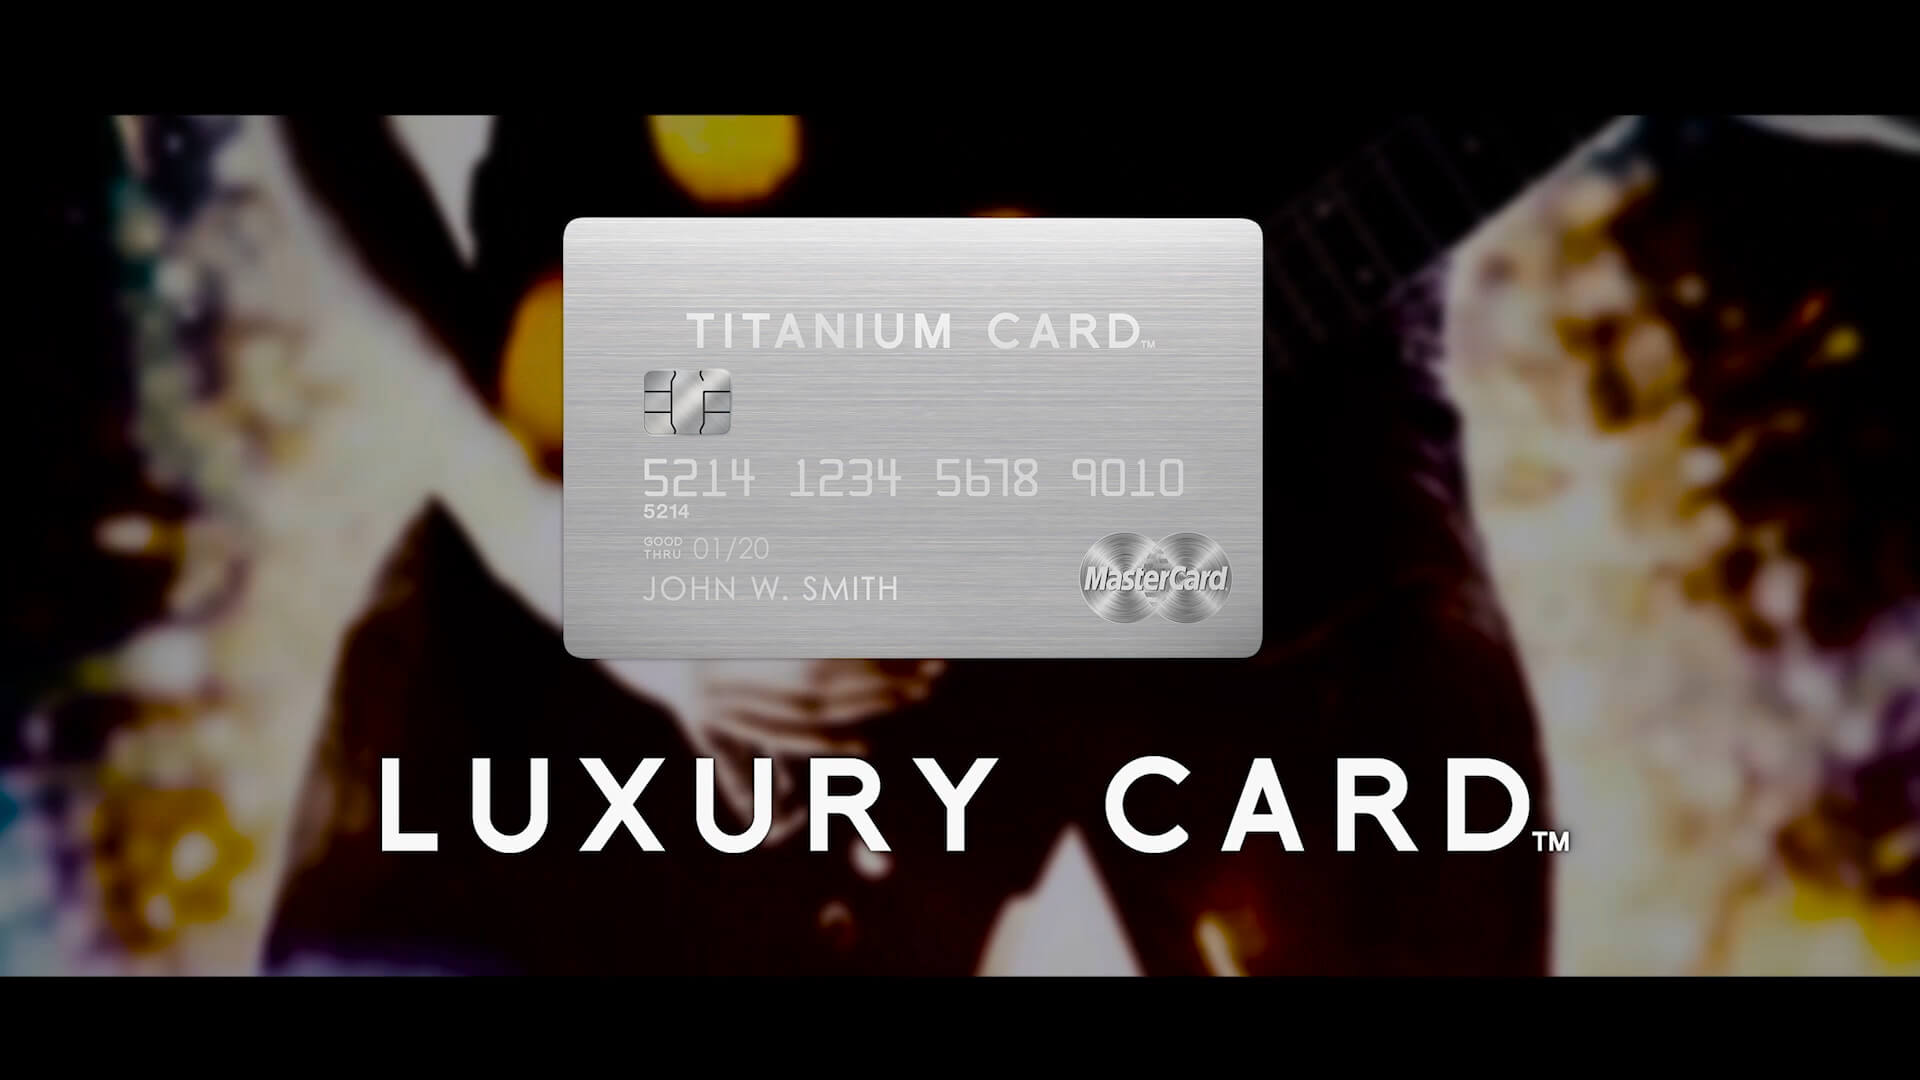 LUXURY CARD